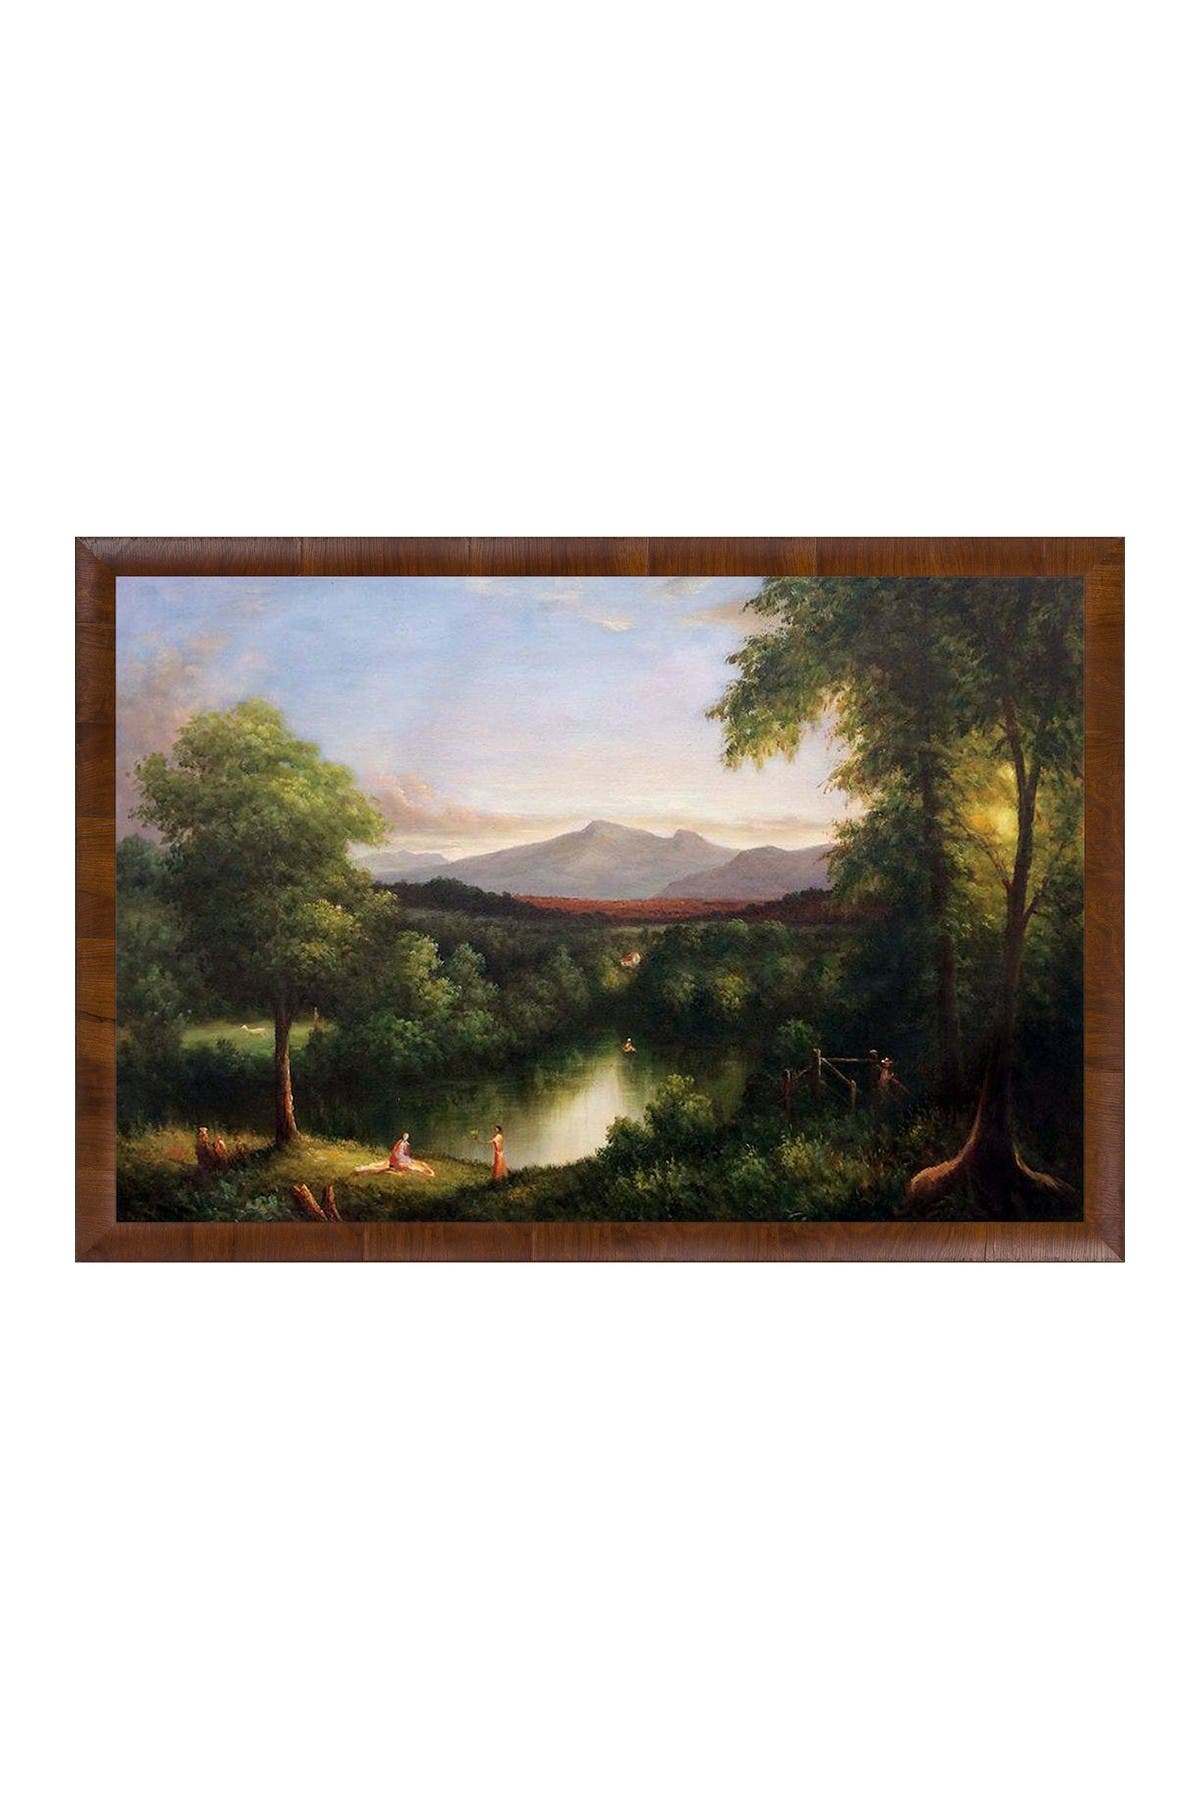 View on the Catskill--Early Autumn, 1837 with Panzano Olivewood Frame - 27\\\